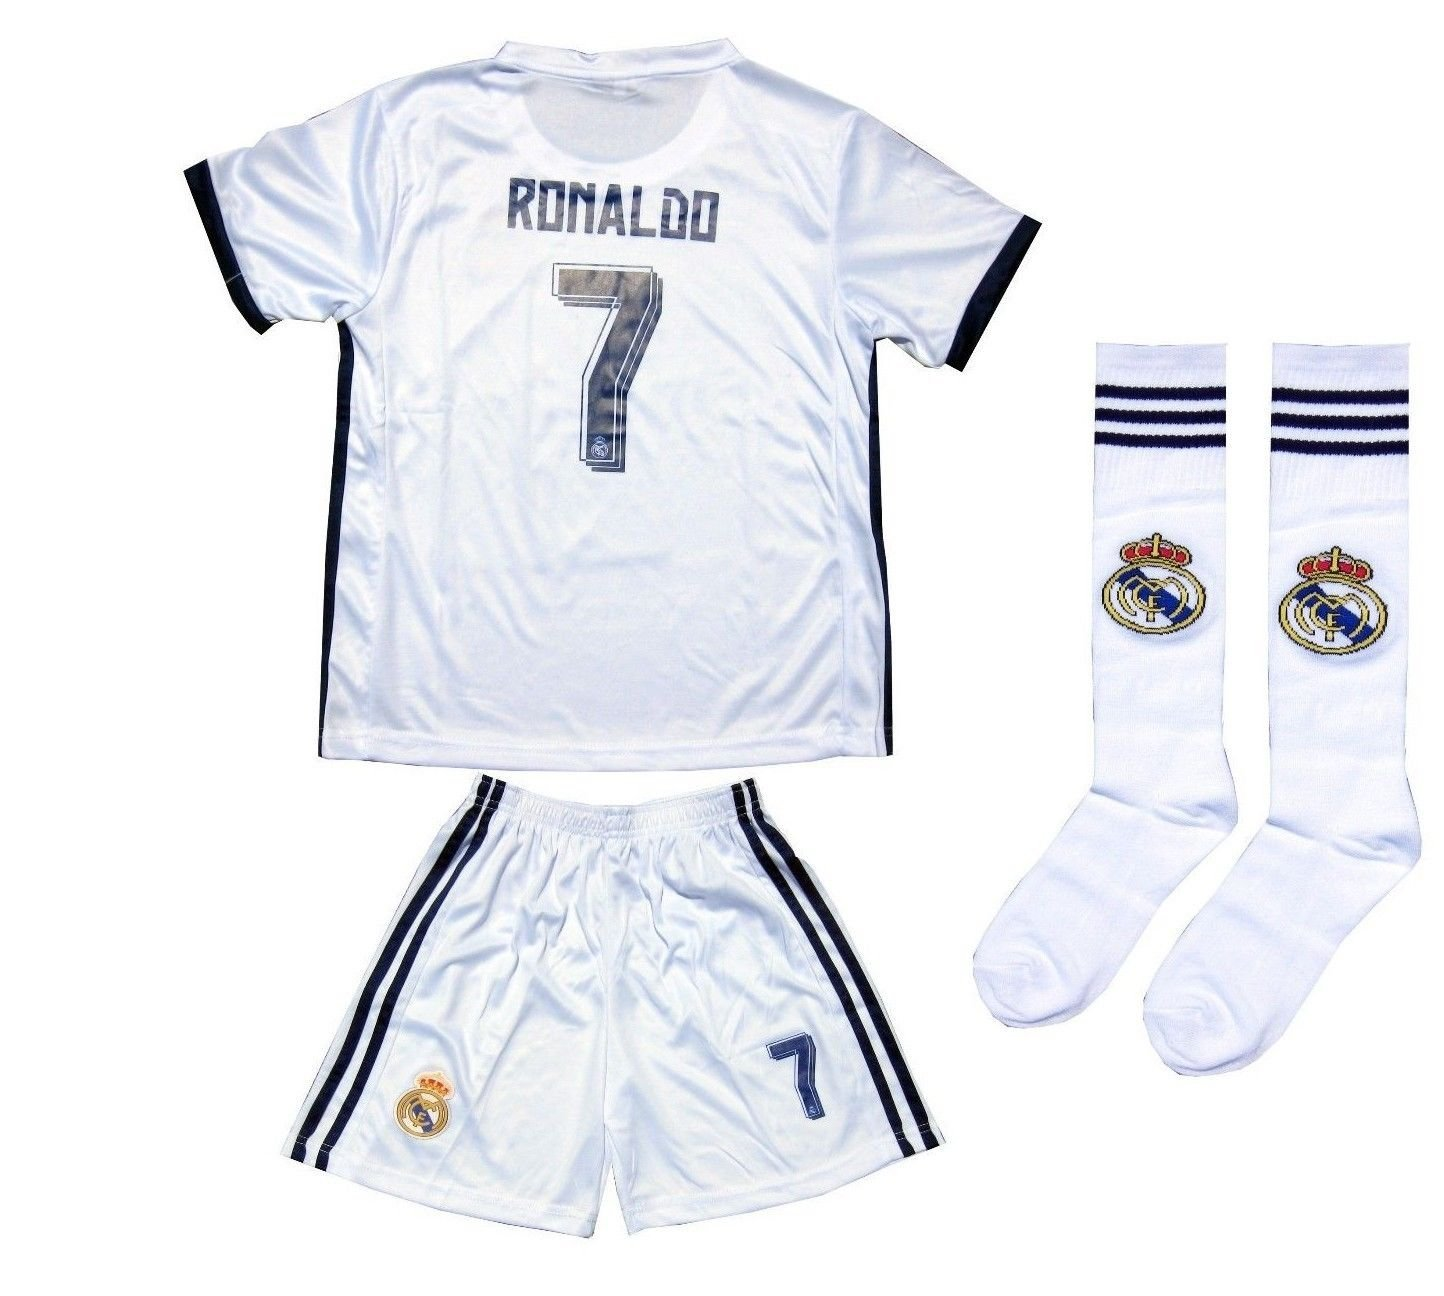 on sale e95dd 1b904 Buy 2016/2017 REAL MADRID #7 RONALDO KIDS HOME SOCCER JERSEY ...